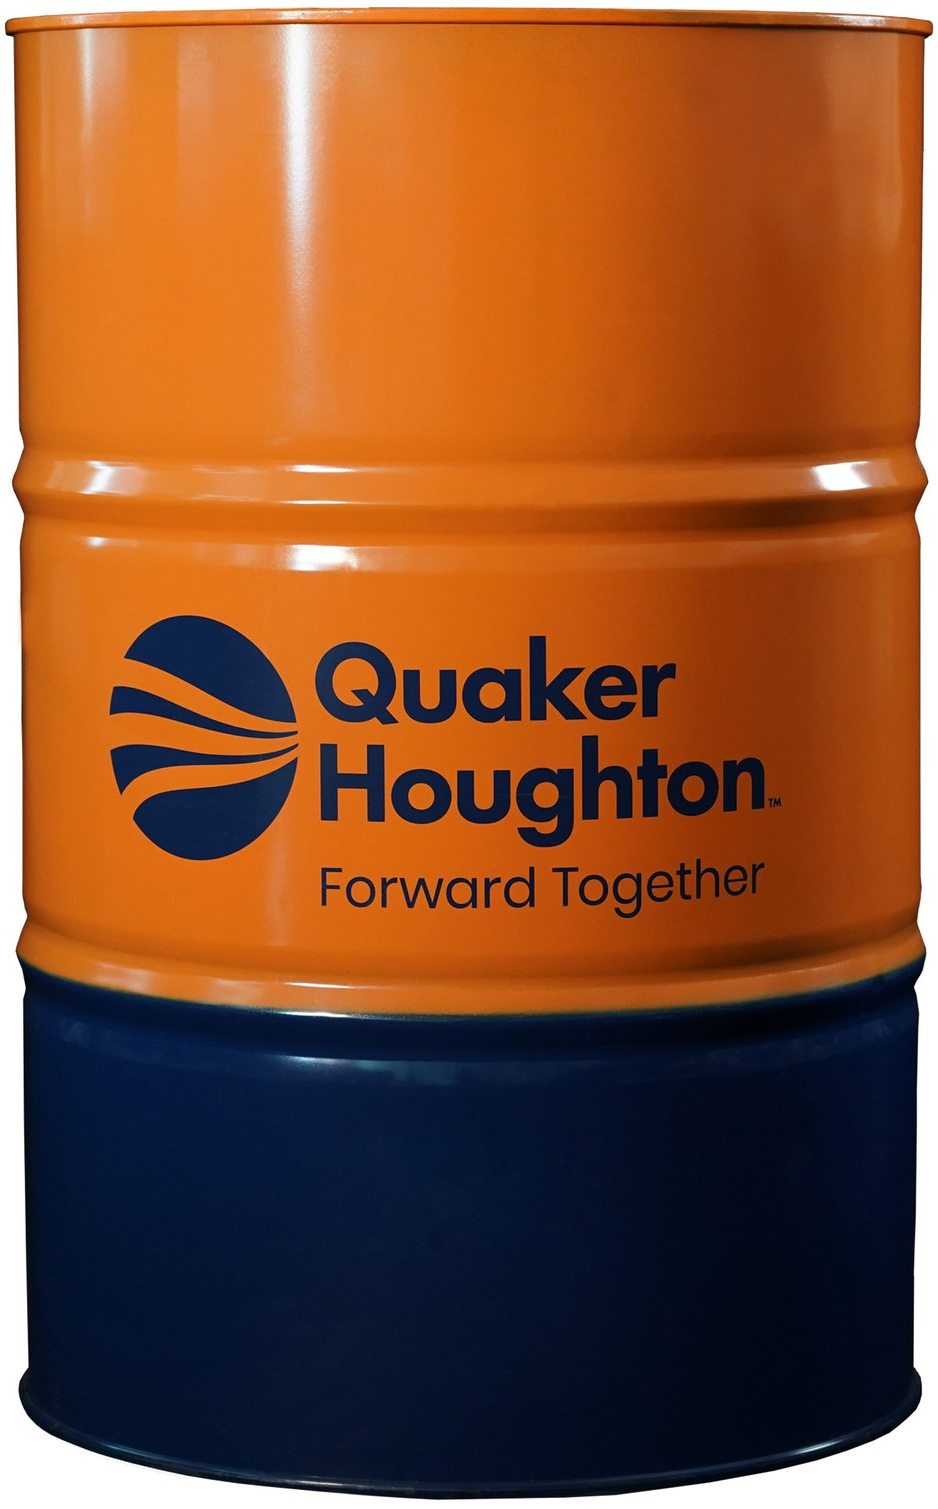 Quaker Products Sold and Distributed by QAdvantage